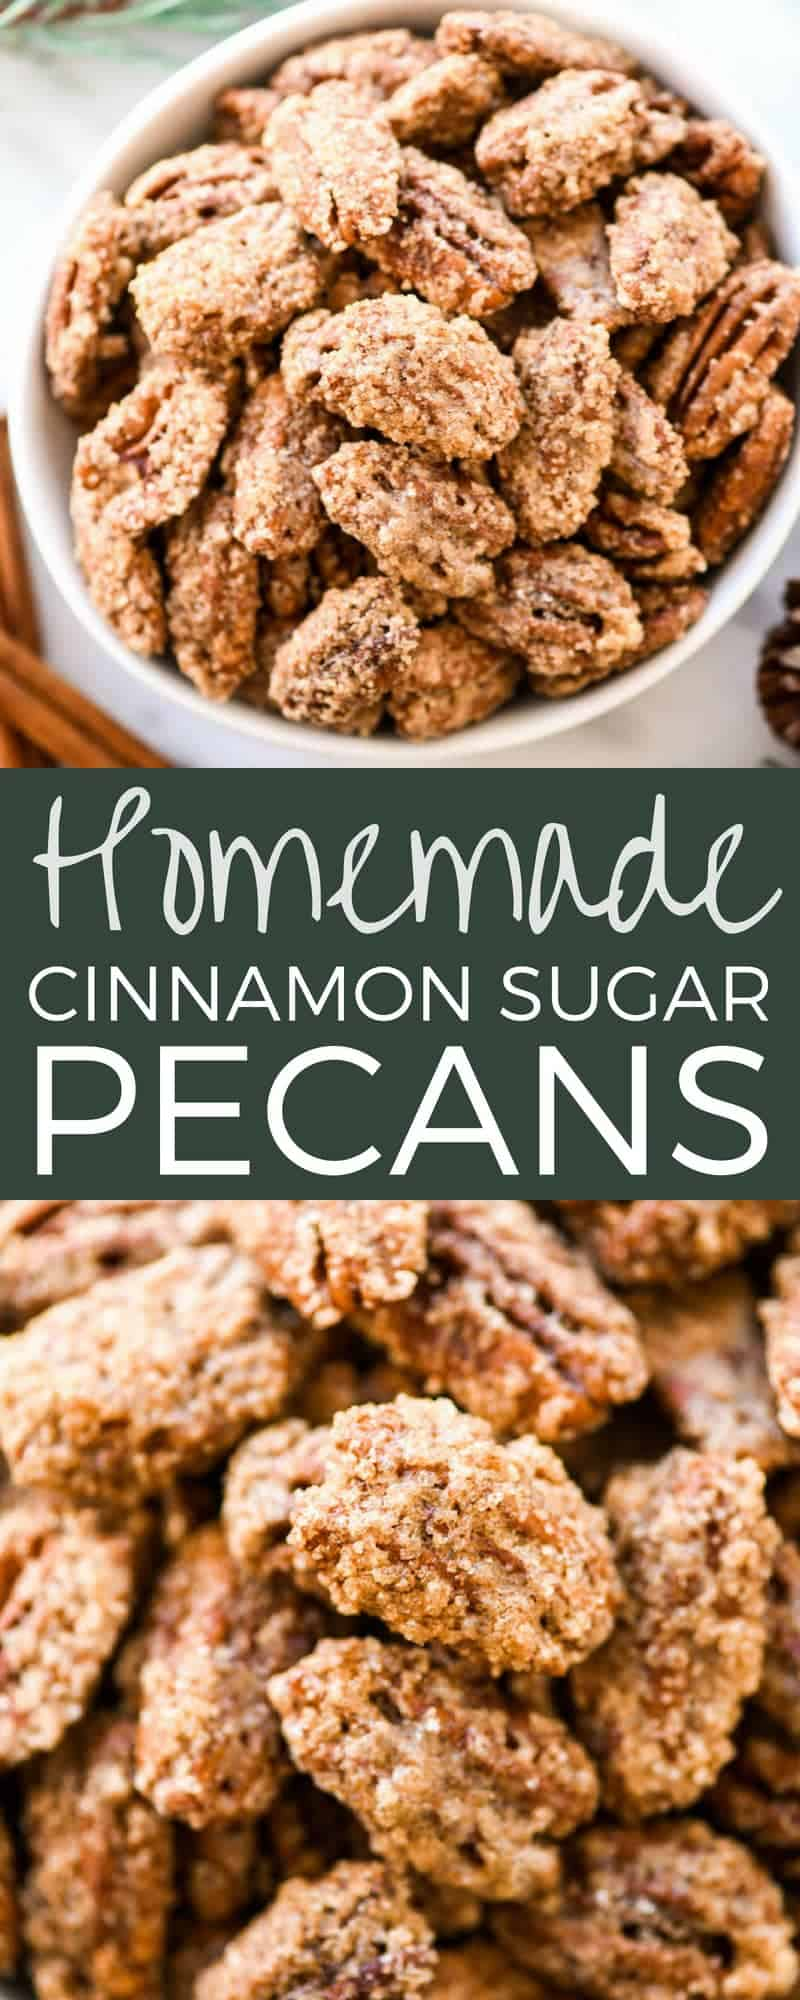 This homemade Cinnamon Sugar Pecans Recipe is made with only 6 ingredients & is WAY better than the nuts from the mall or fair! Plus, they're gluten & dairy-free & freezer-friendly! Make a batch, store them in the freezer and use as a salad topper or enjoy as a sweet snack! #glutenfree #dairyfree #cinnamonsugarnuts #pecans #snack #saladtopper #easy #homemade